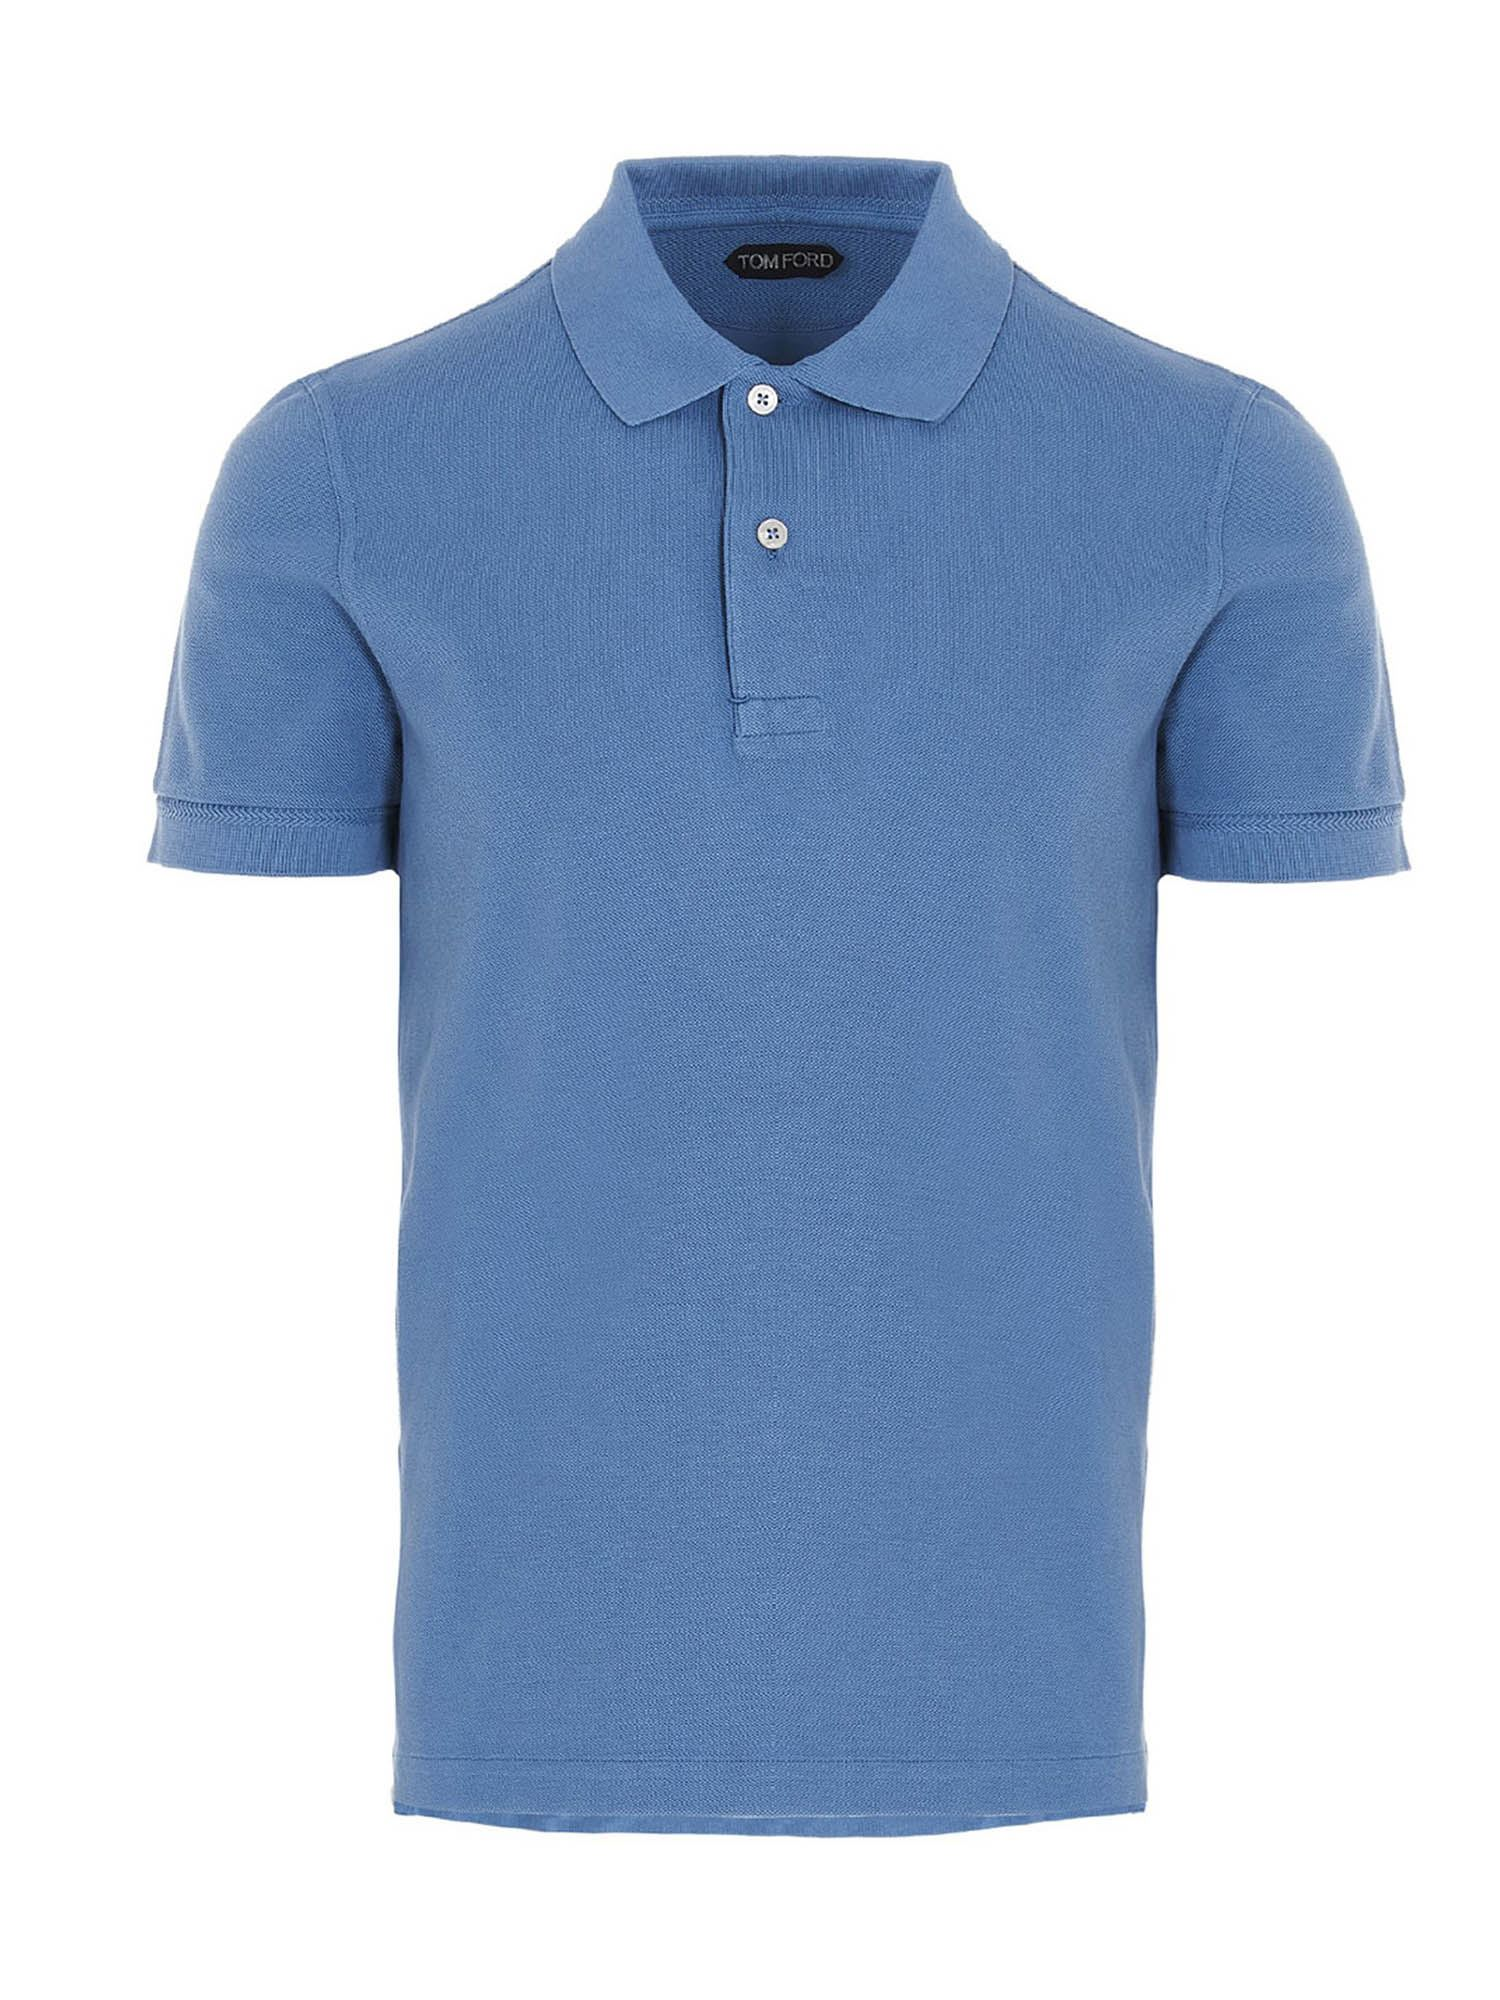 TOM FORD COTTON POLO SHIRT IN LIGHT BLUE